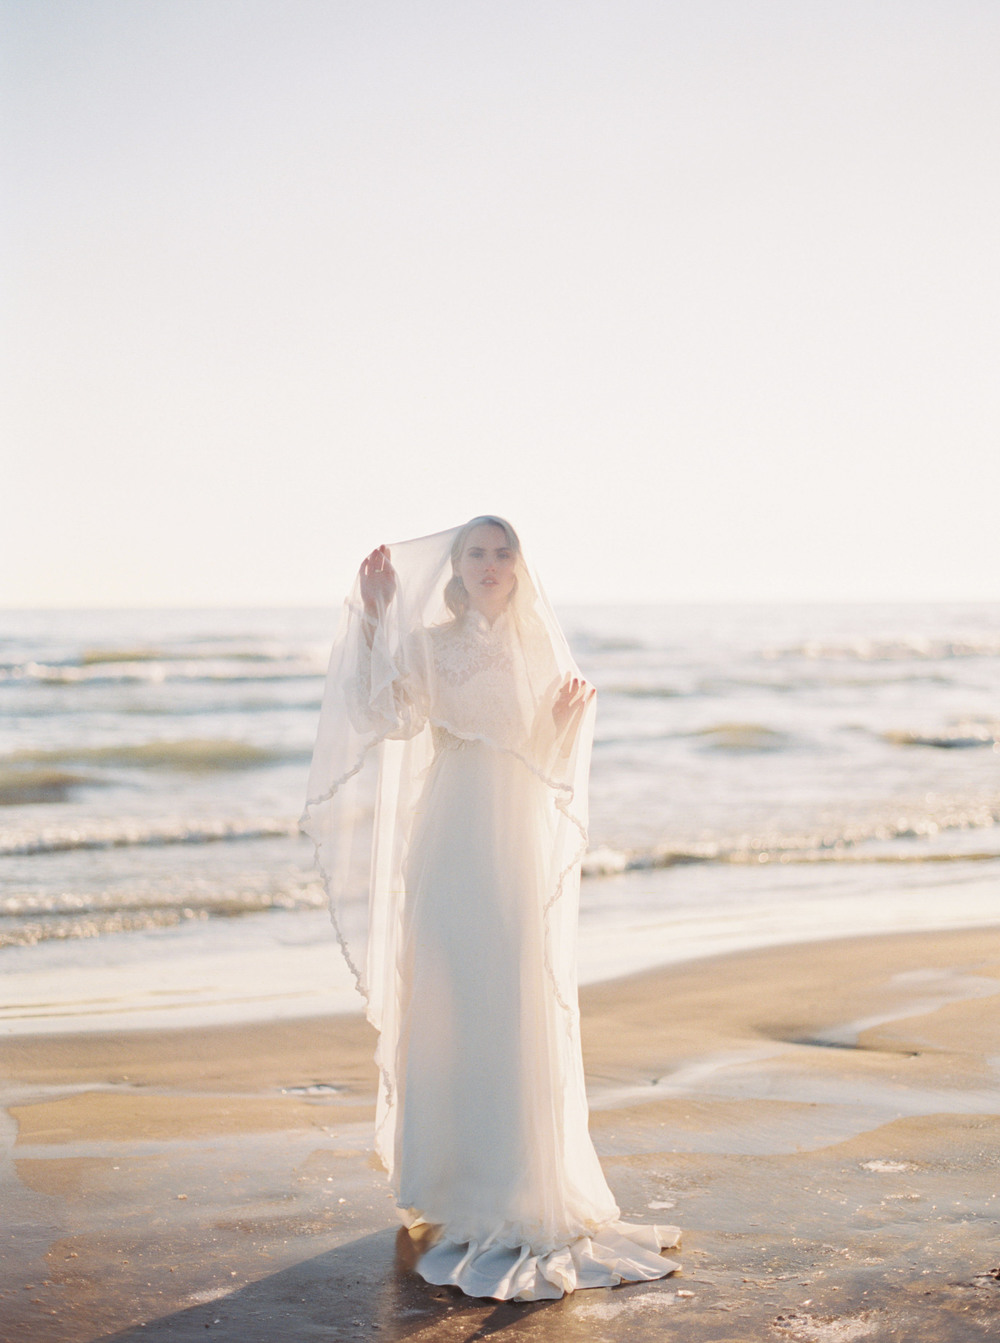 Kyle John l Fine Art Wedding Photography l Chicago, Copenhagen, California, New York, Destination l Blog l Sea and Sand_19